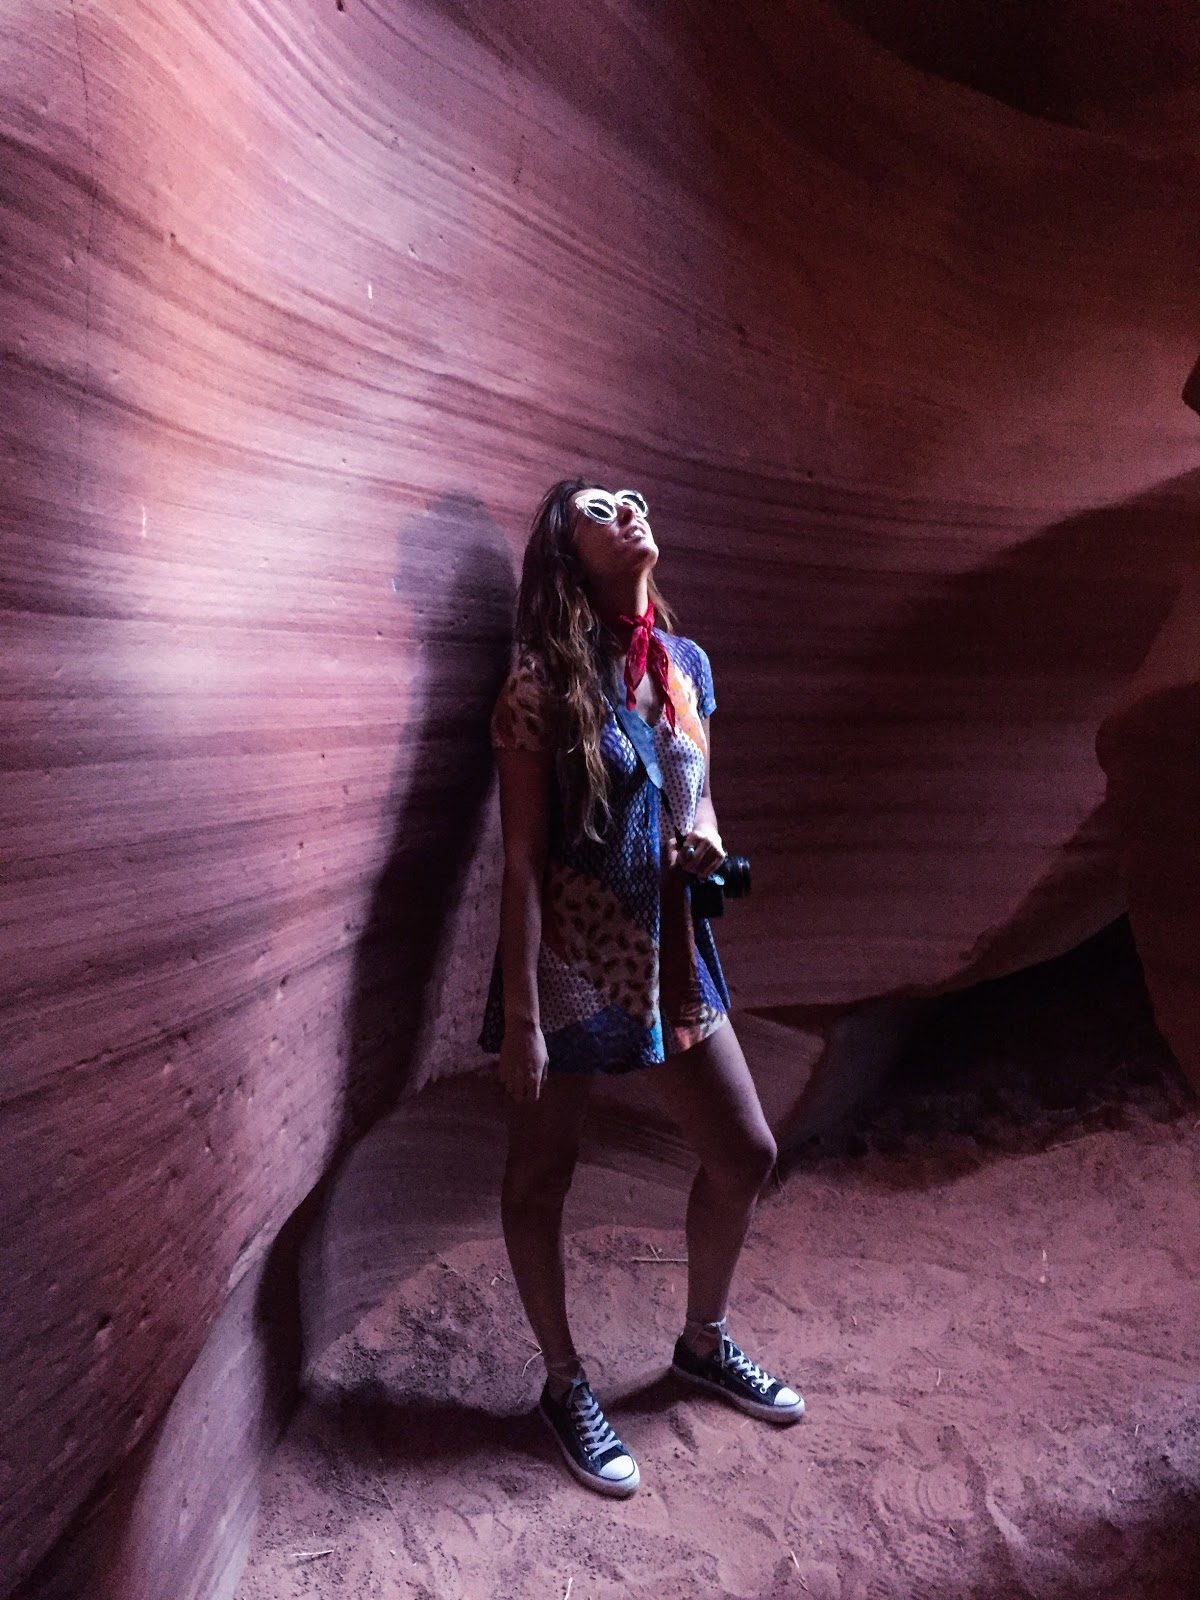 antelope canyon arizona usa roadtrip